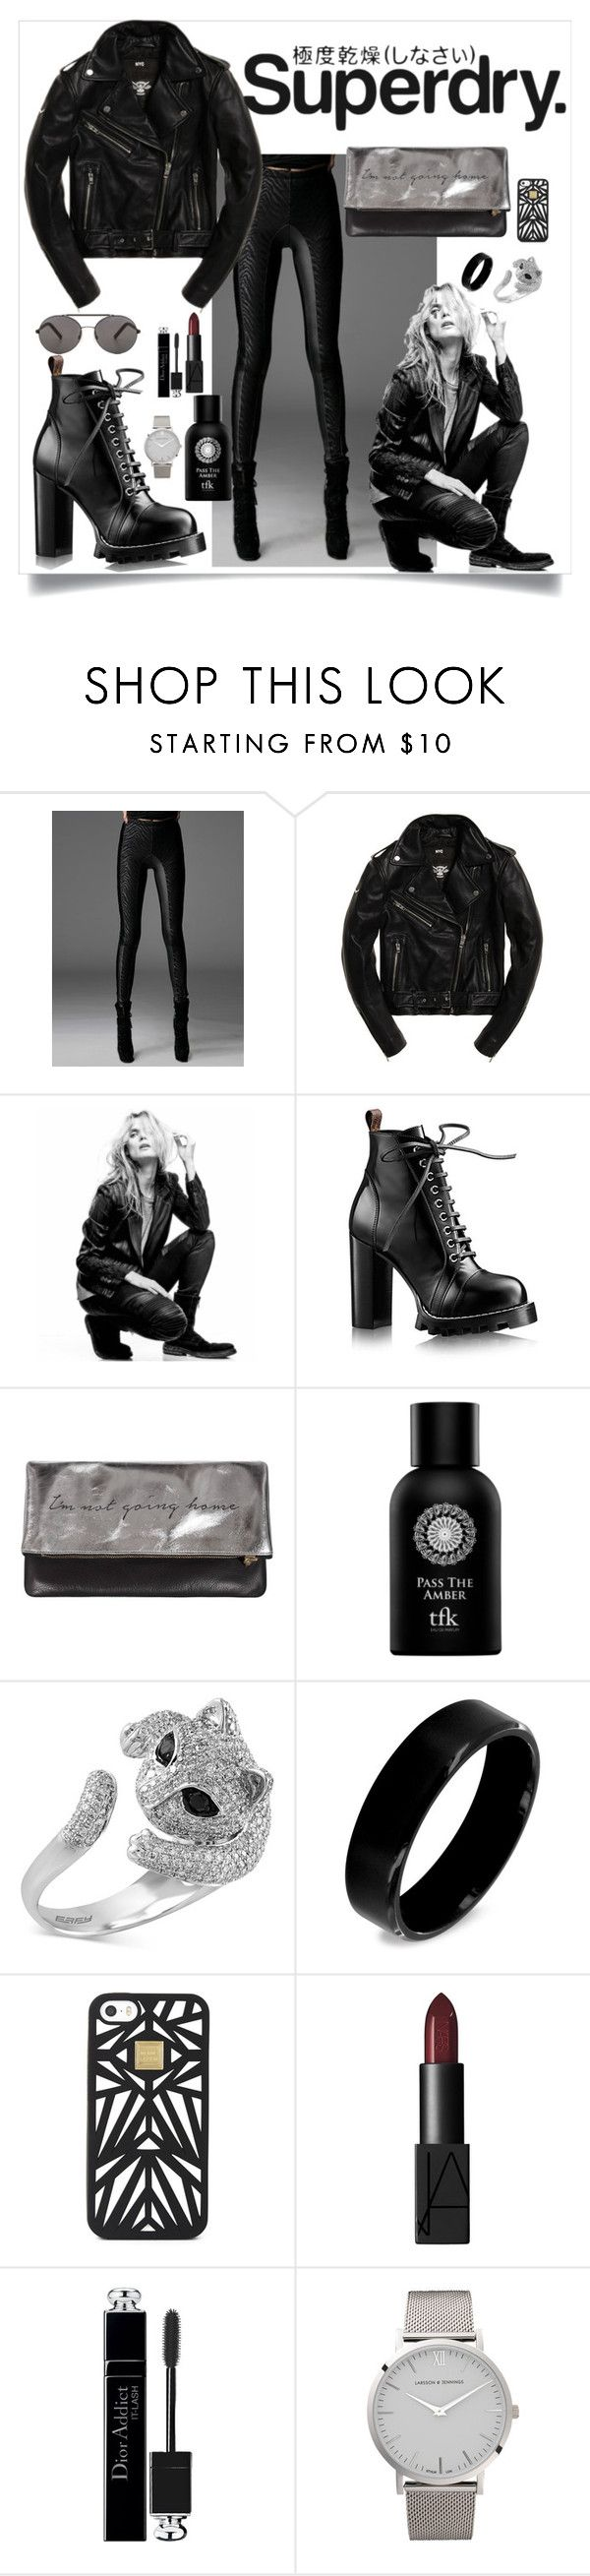 """""""Superdry. the Leather"""" by st-rose93 ❤ liked on Polyvore featuring Superdry, Superfine, Sarah Baily, The Fragrance Kitchen, Effy Jewelry, West Coast Jewelry, Hervé Léger, NARS Cosmetics, Christian Dior and Larsson & Jennings"""